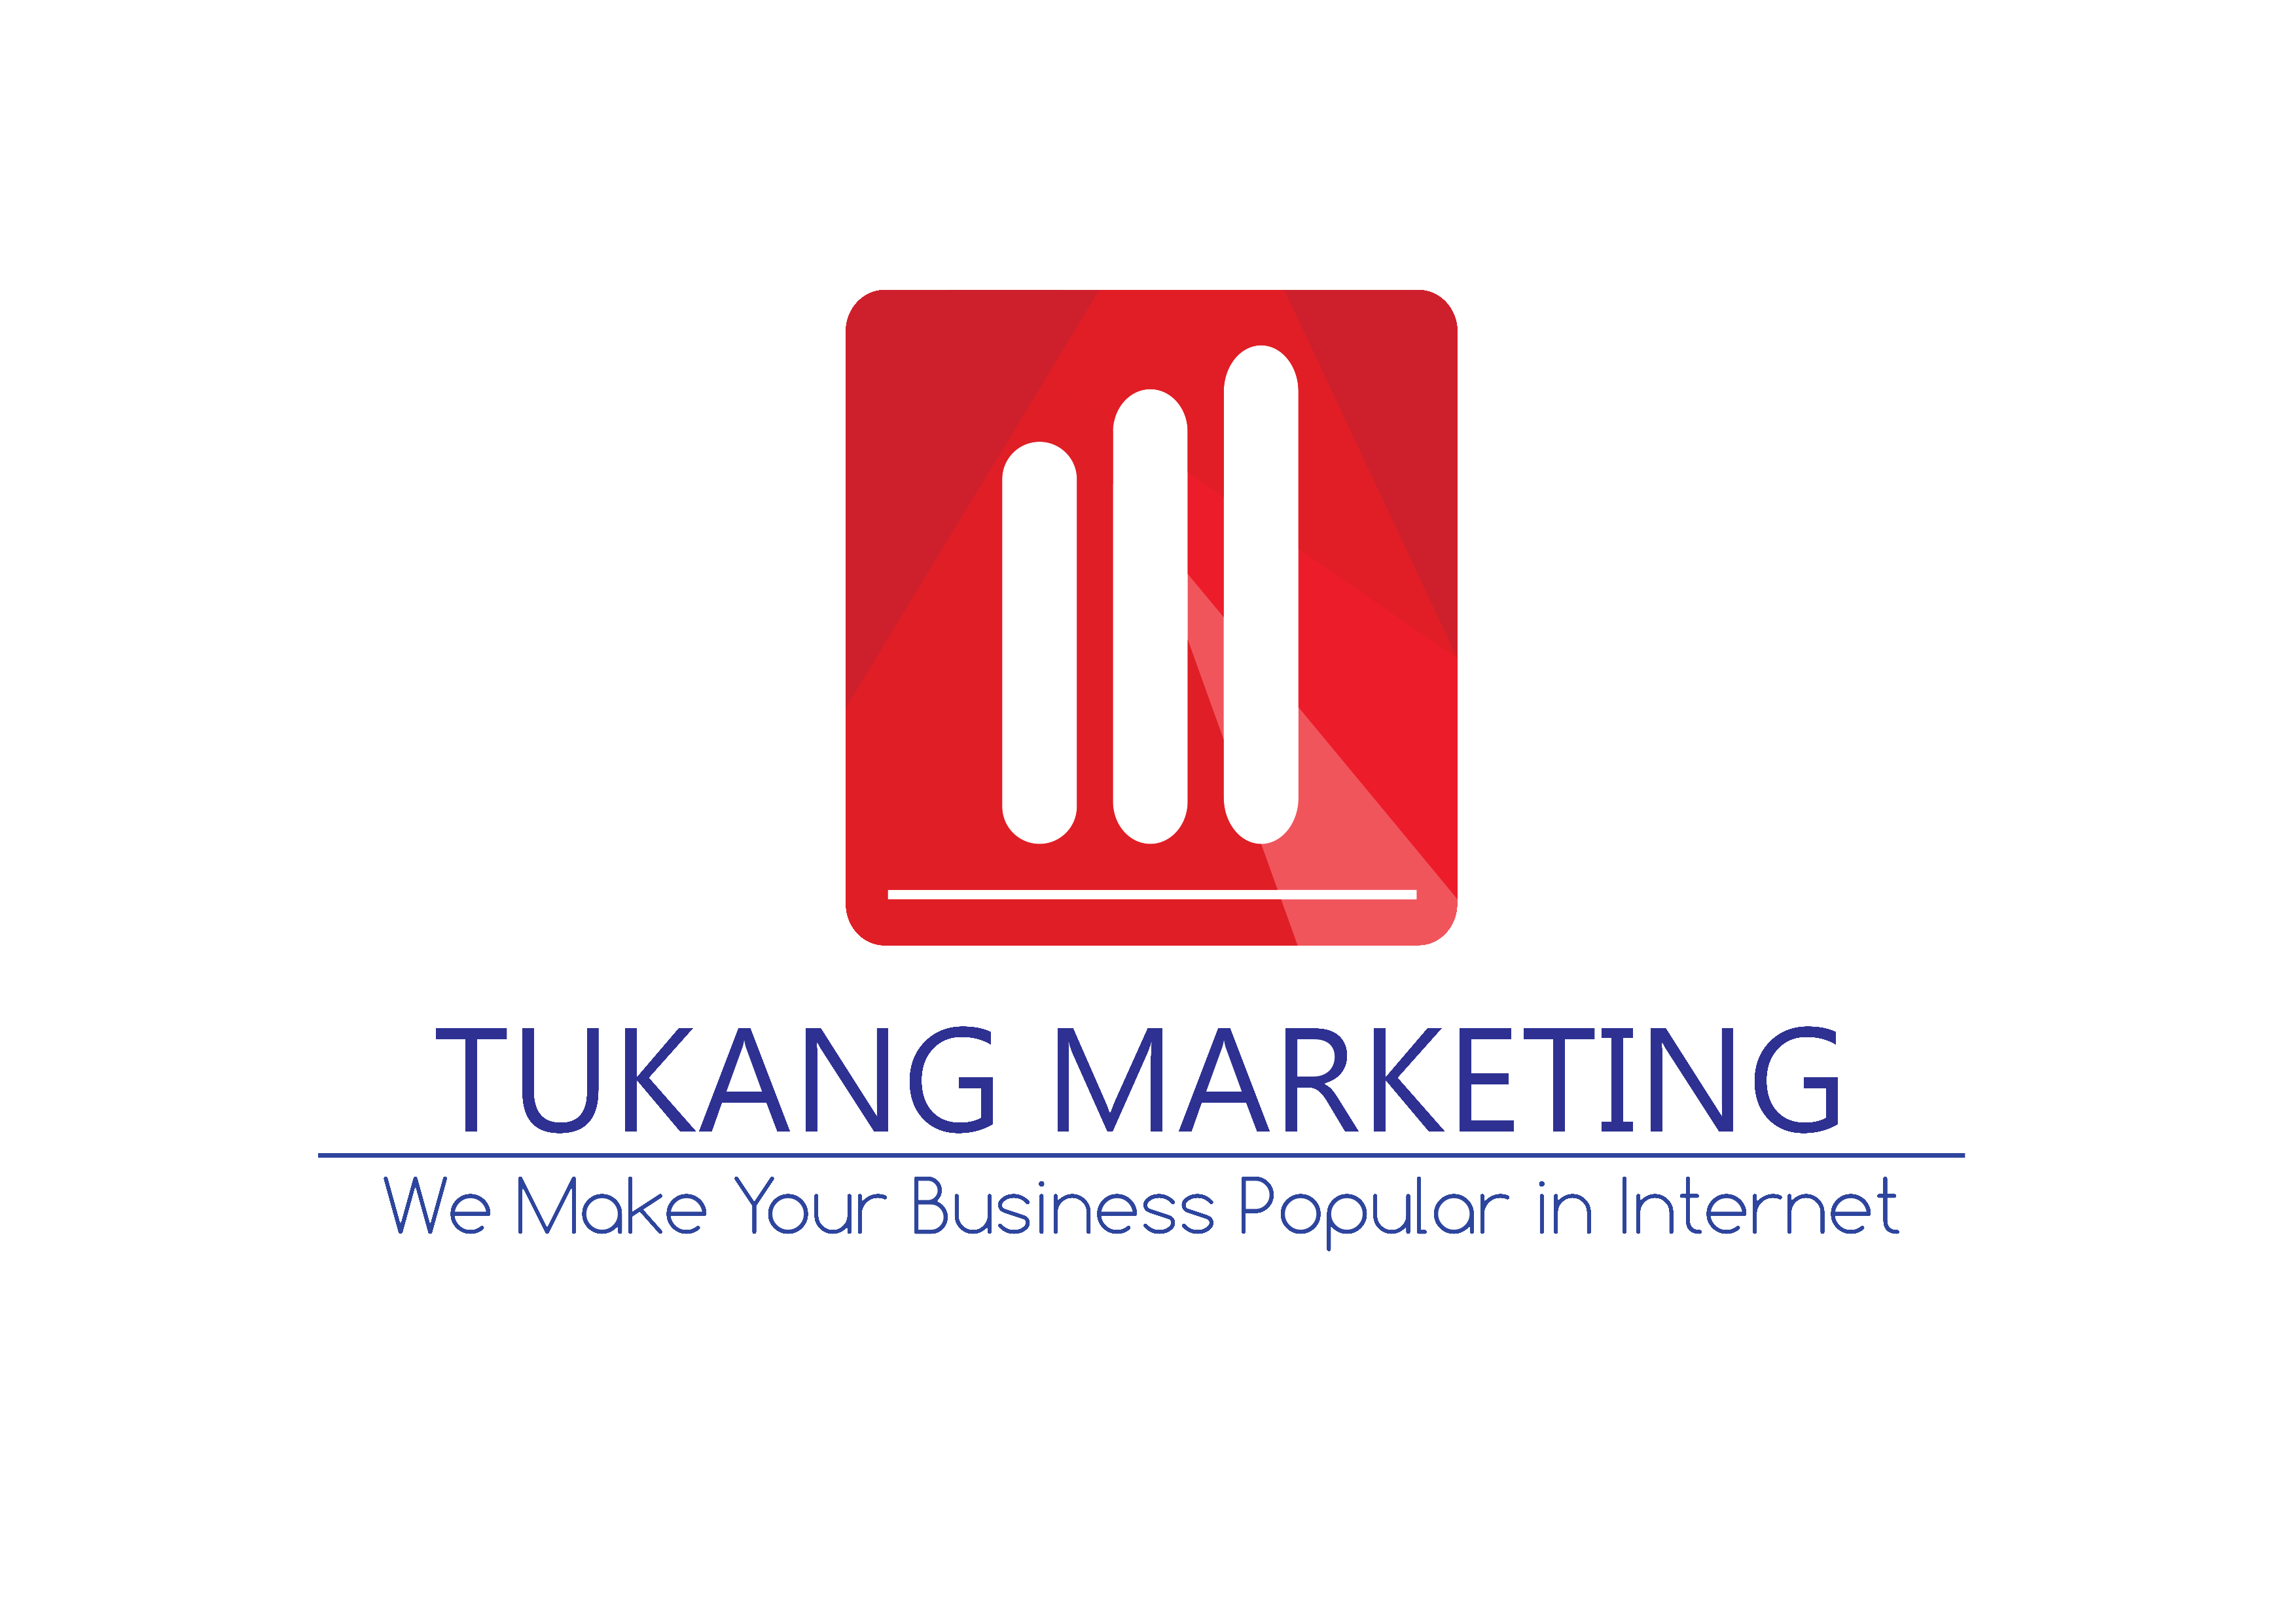 The Tukang Marketing